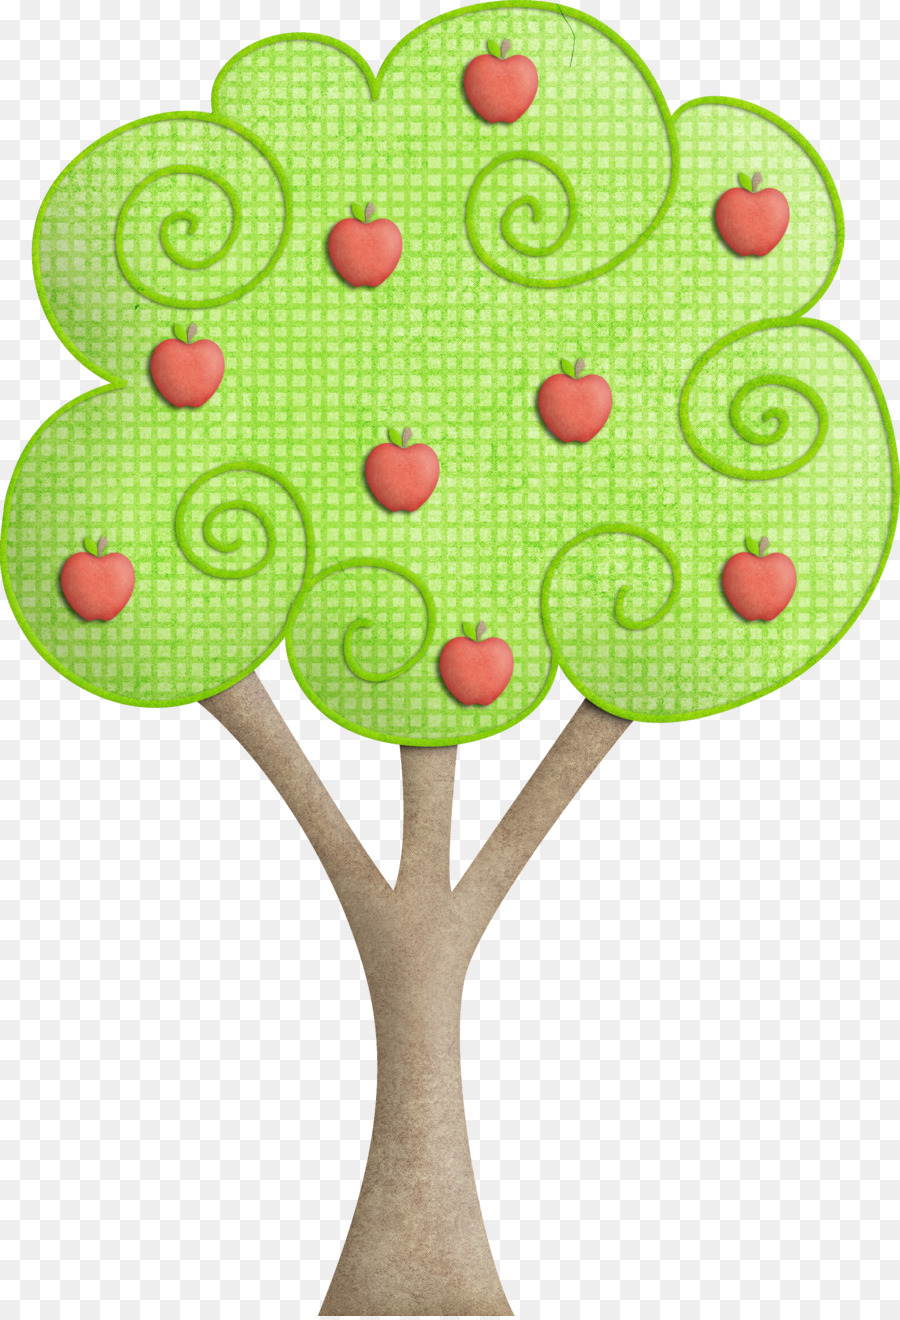 Apple Tree Drawing at GetDrawings.com   Free for personal use Apple ...